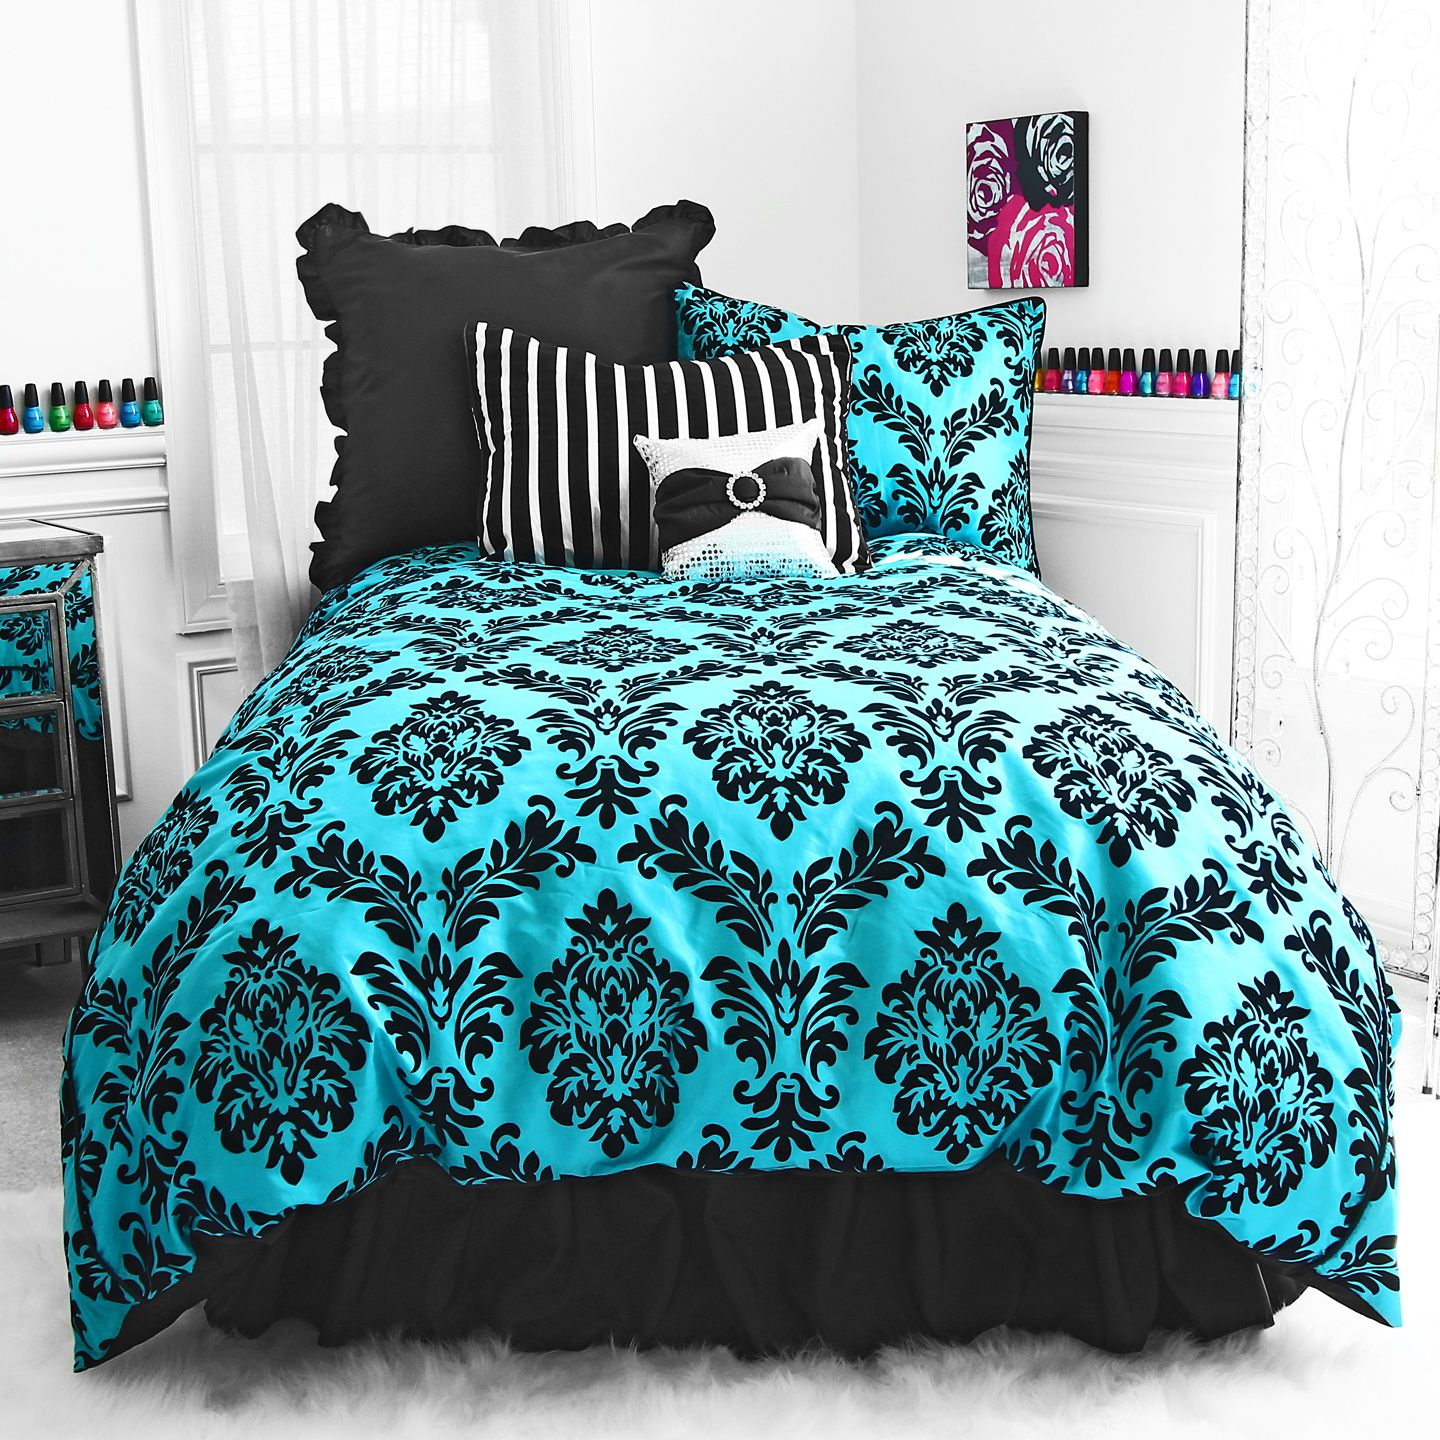 Buy Collection Details Teen Bedding, Pink Bedding, Dorm Bedding, Teen